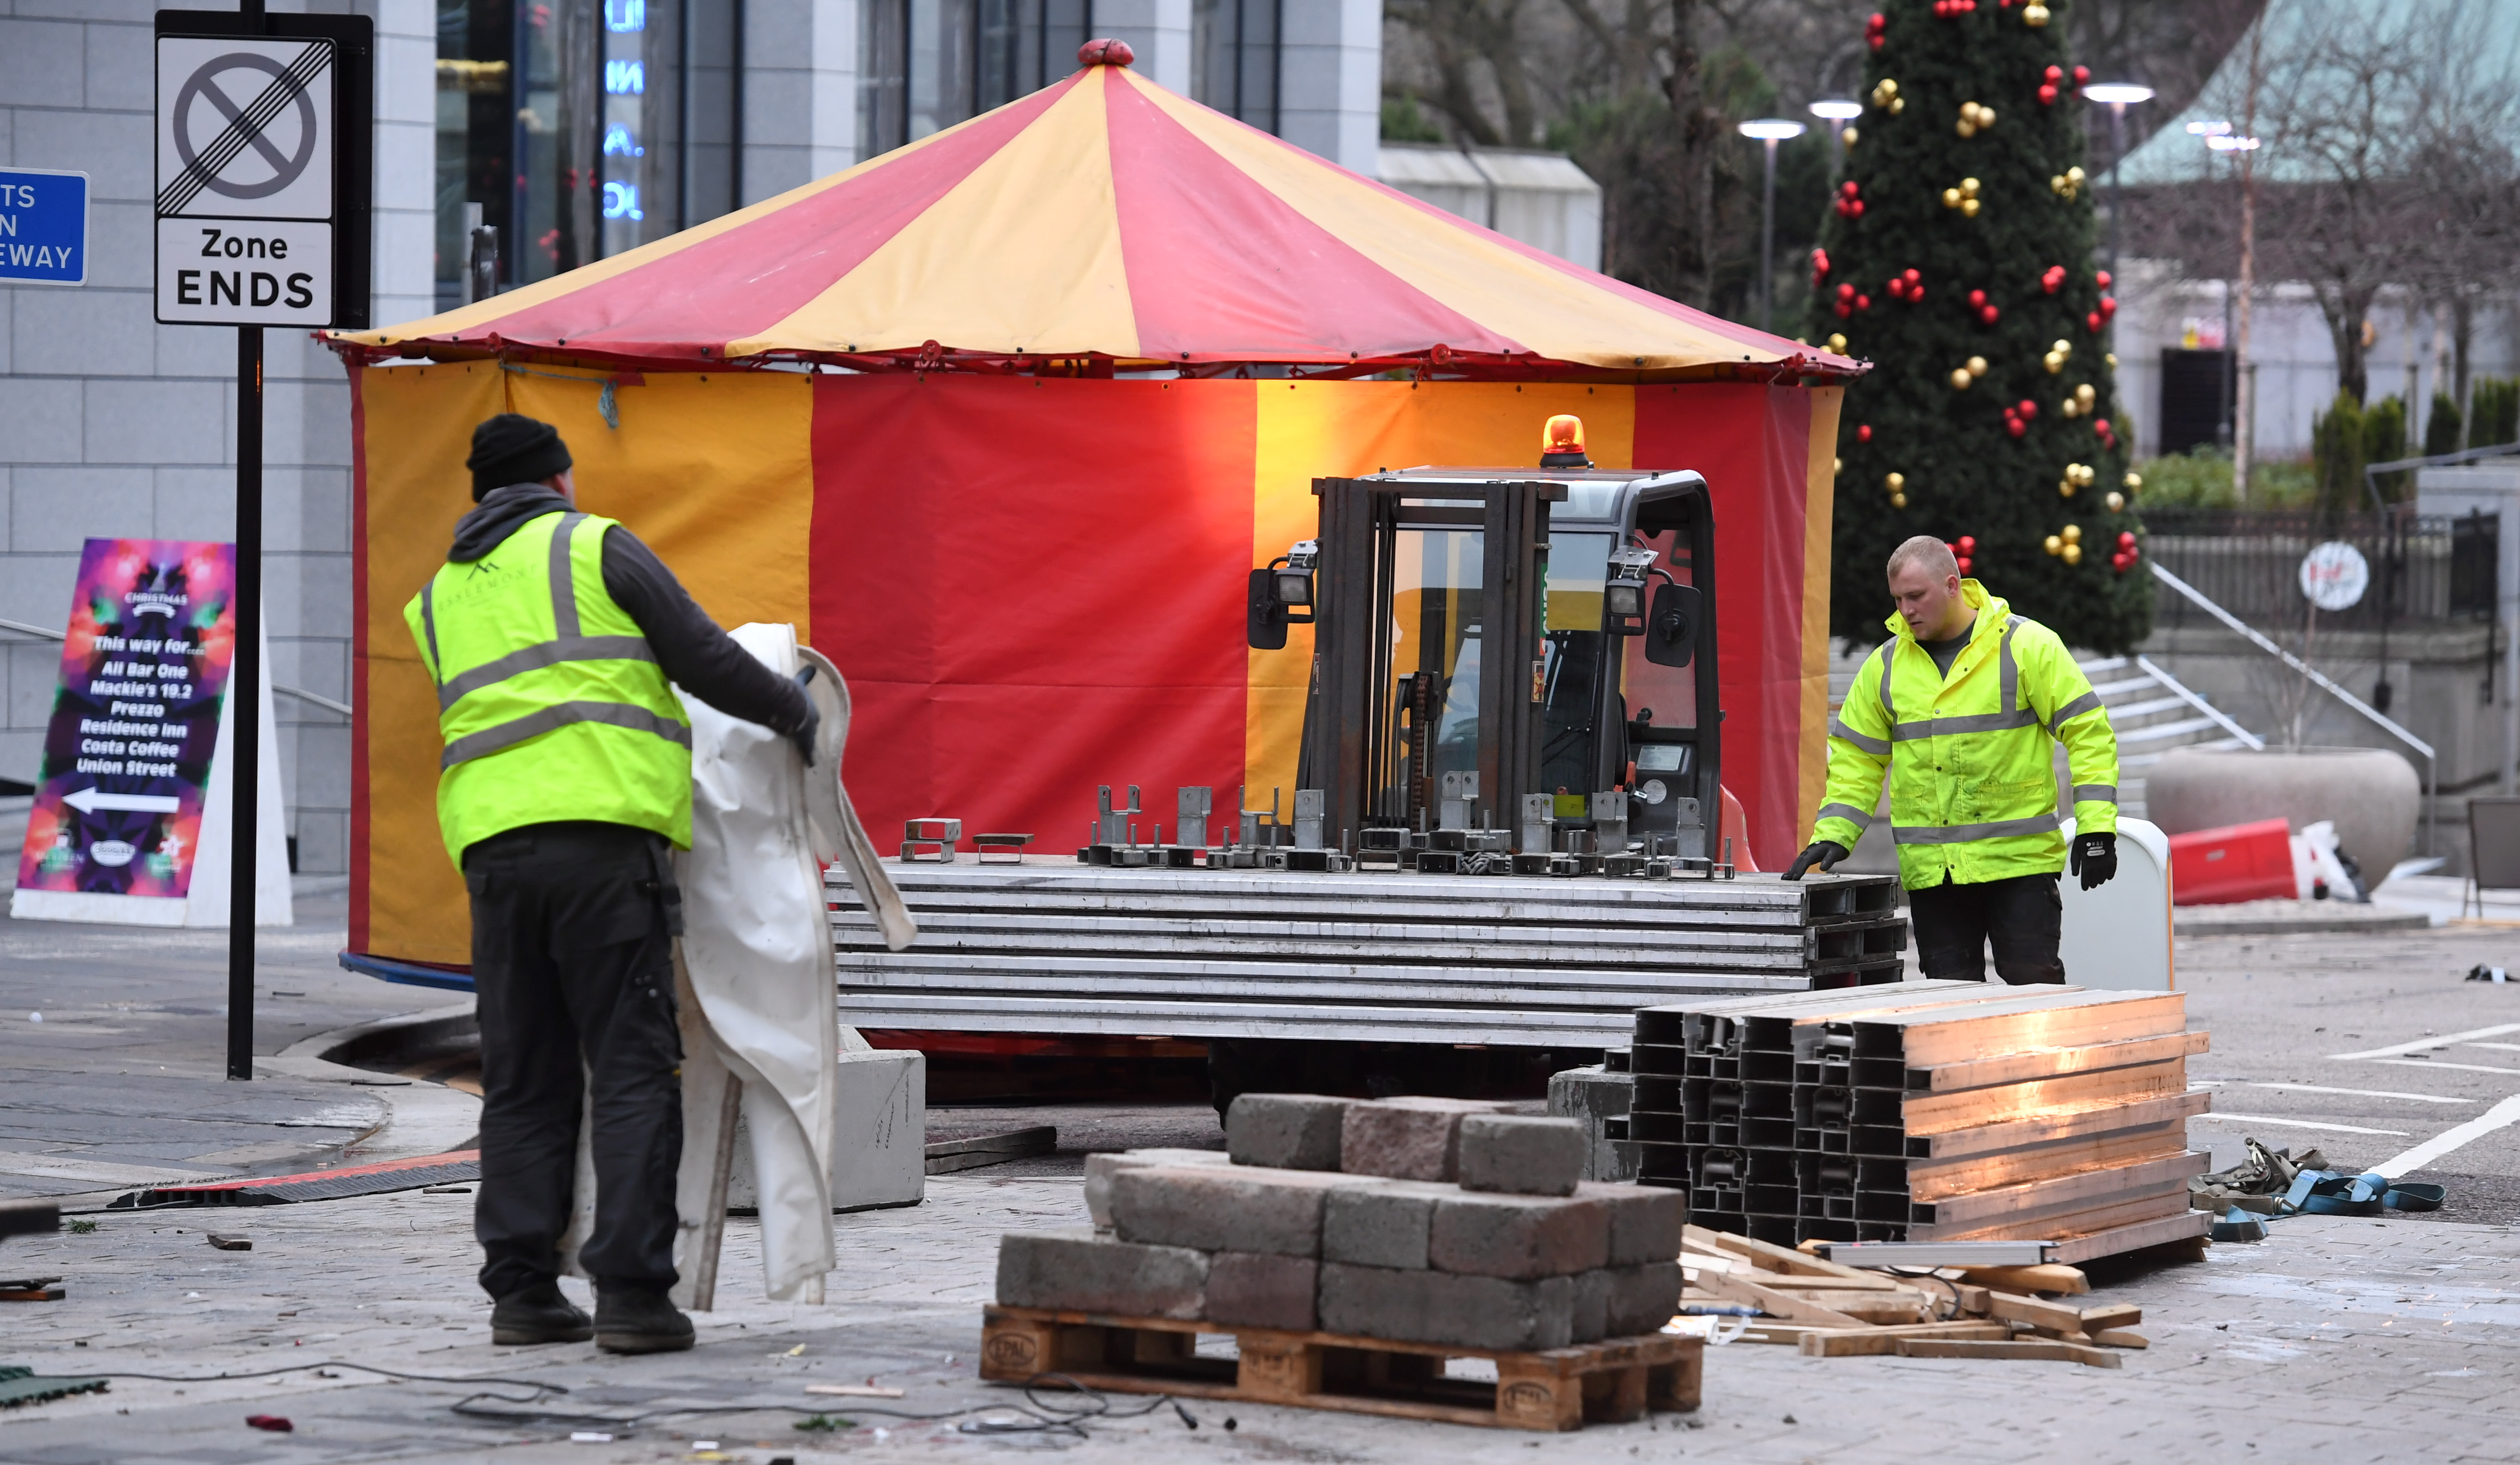 Crews are removing the stalls and rides from the Christmas village